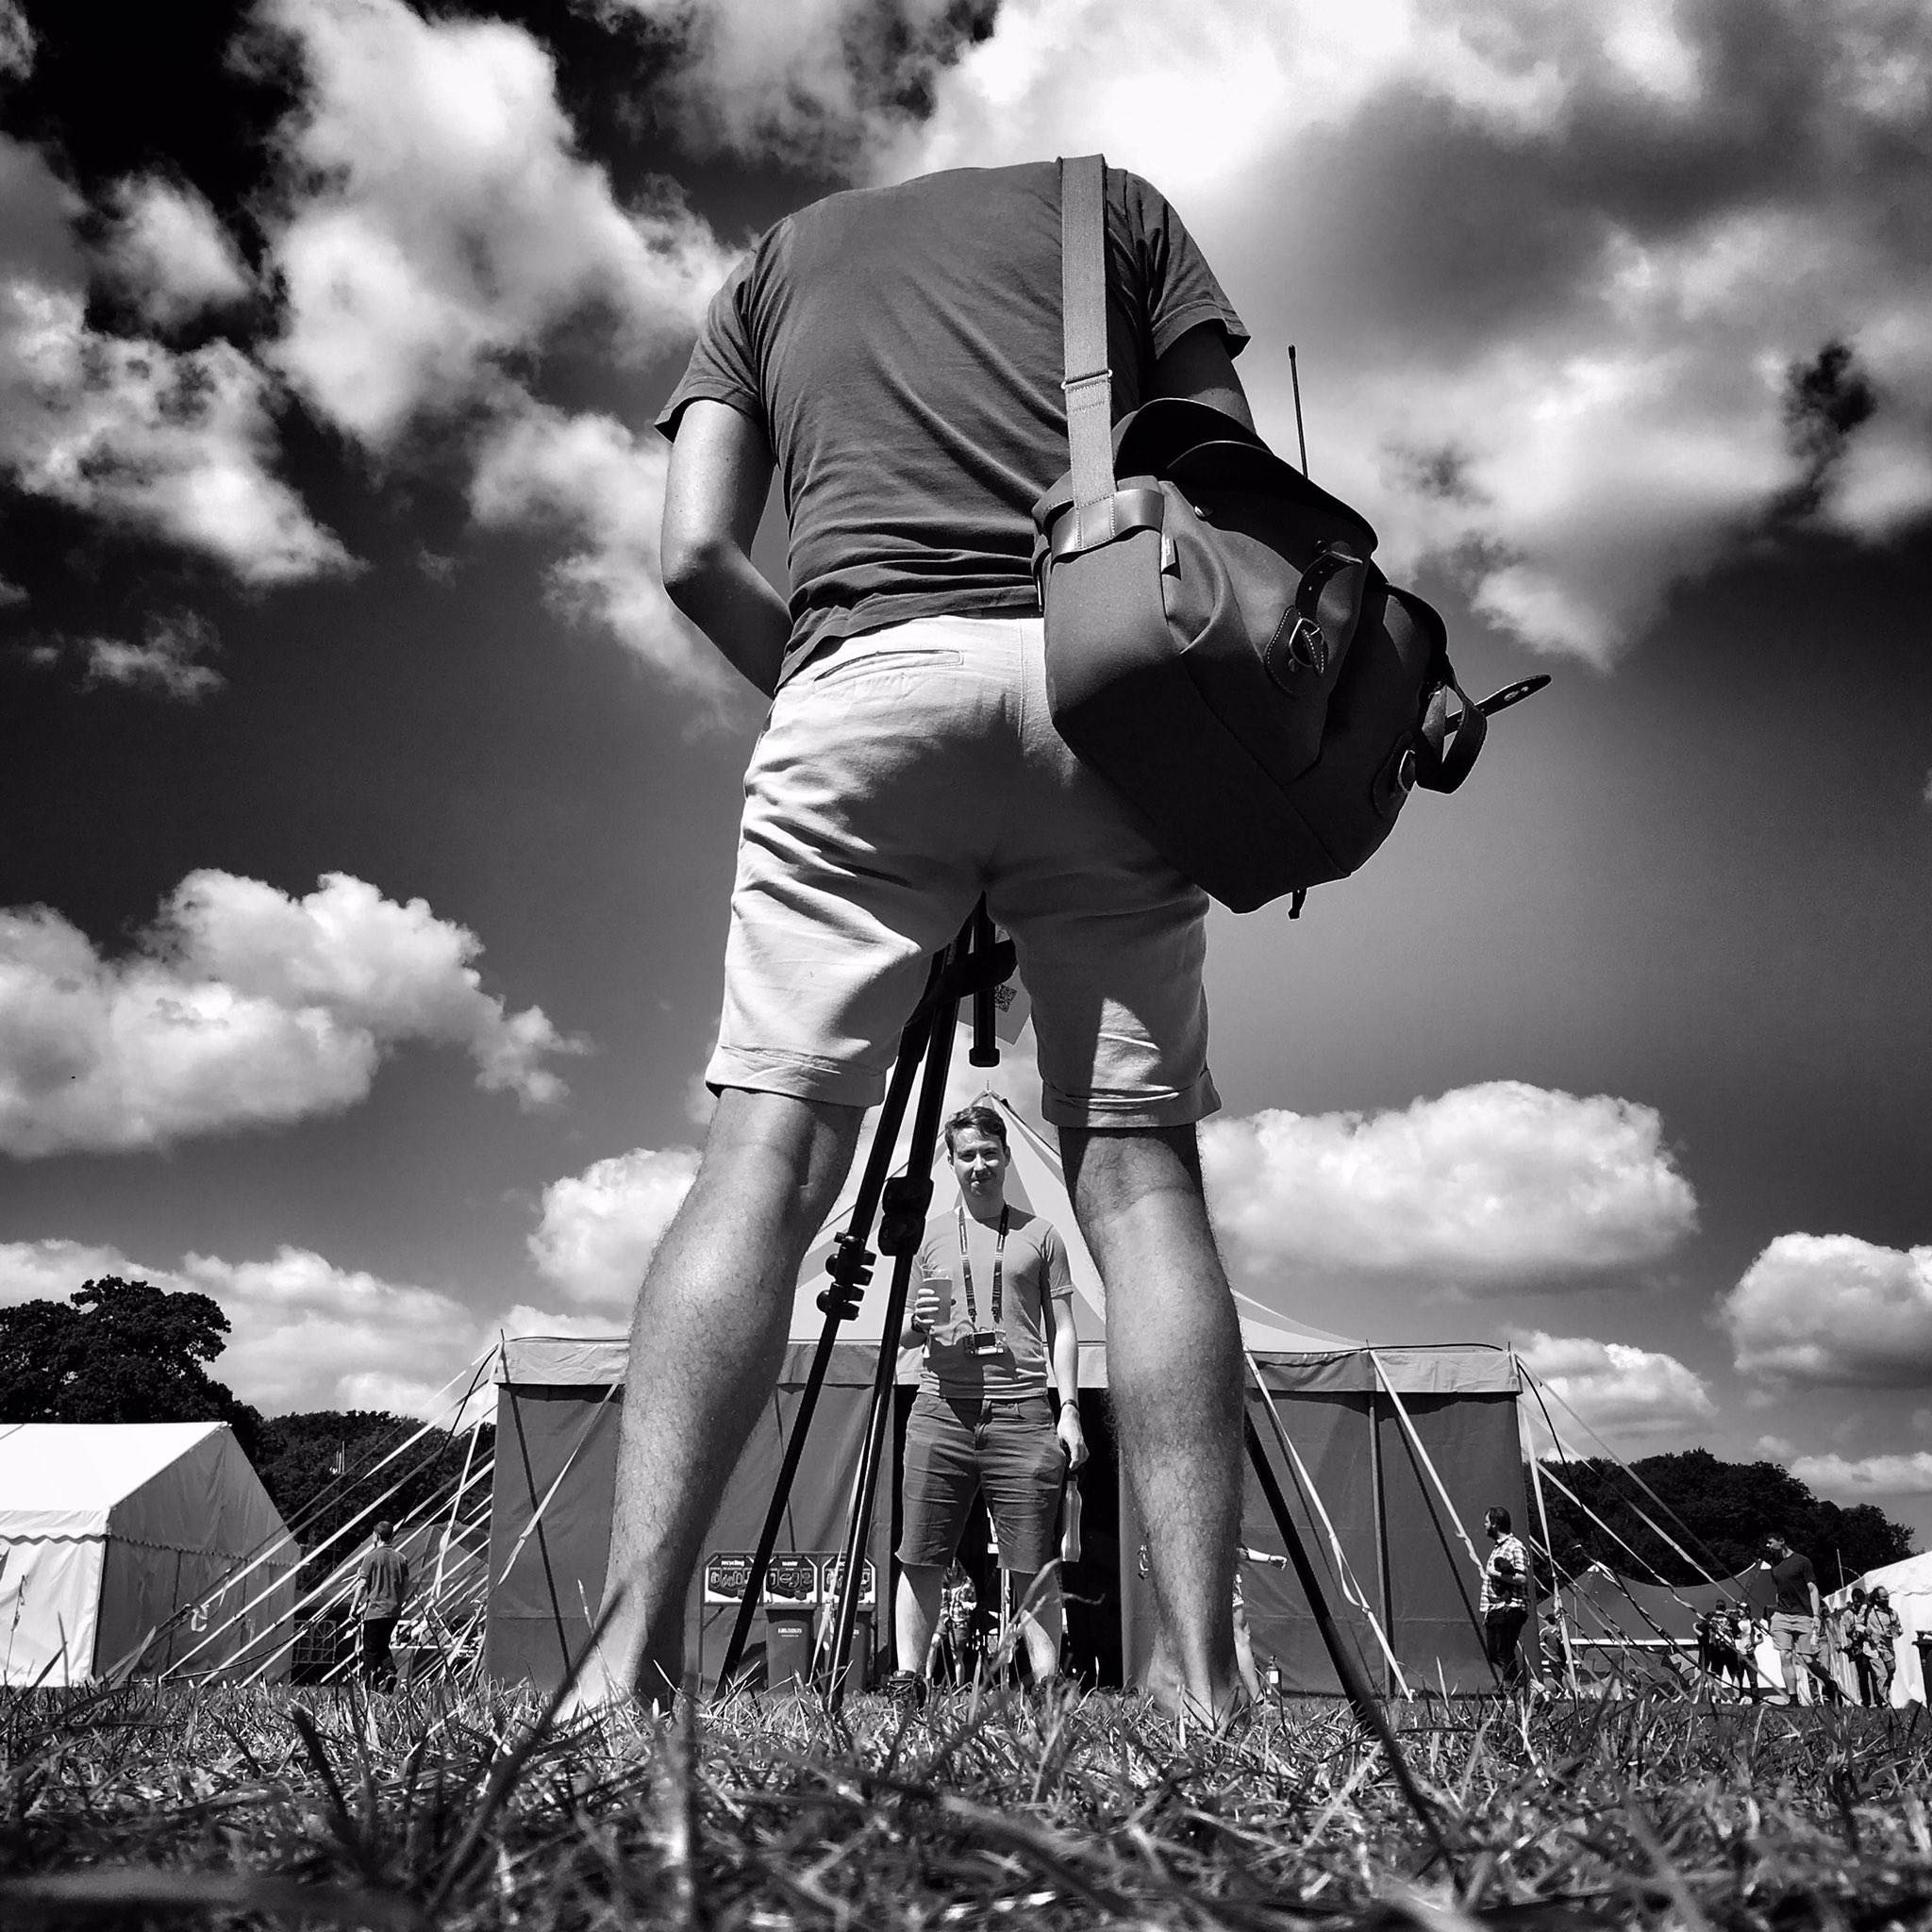 Spot @futureshape at #emfcamp  & you might be lucky enough to get your portrait immortalised on B&W film. https://t.co/7l7FAPlMKc